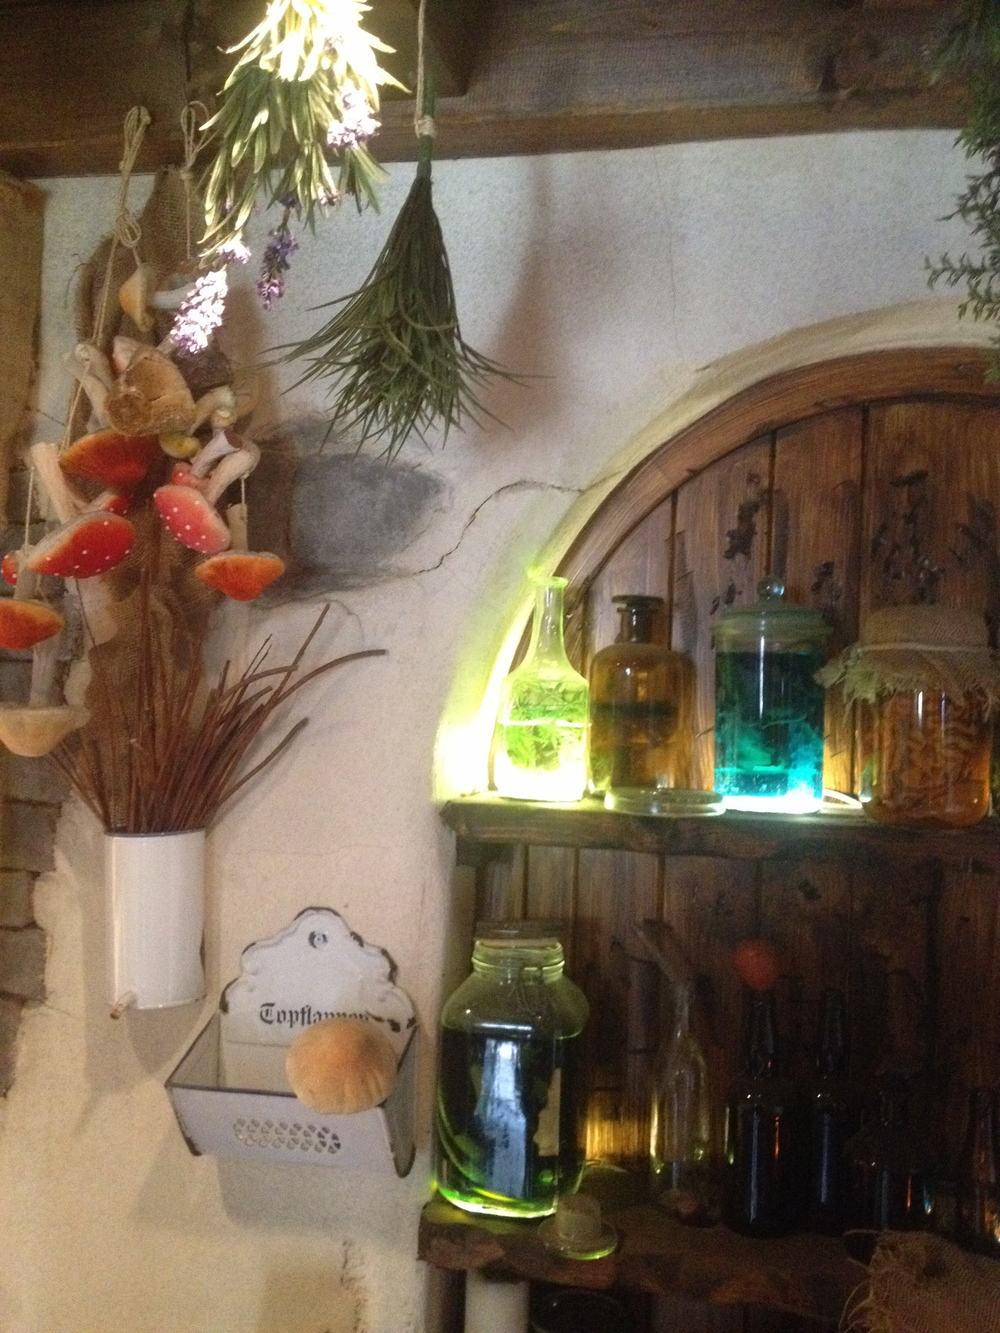 Witch's potion ingredients inside her cottage